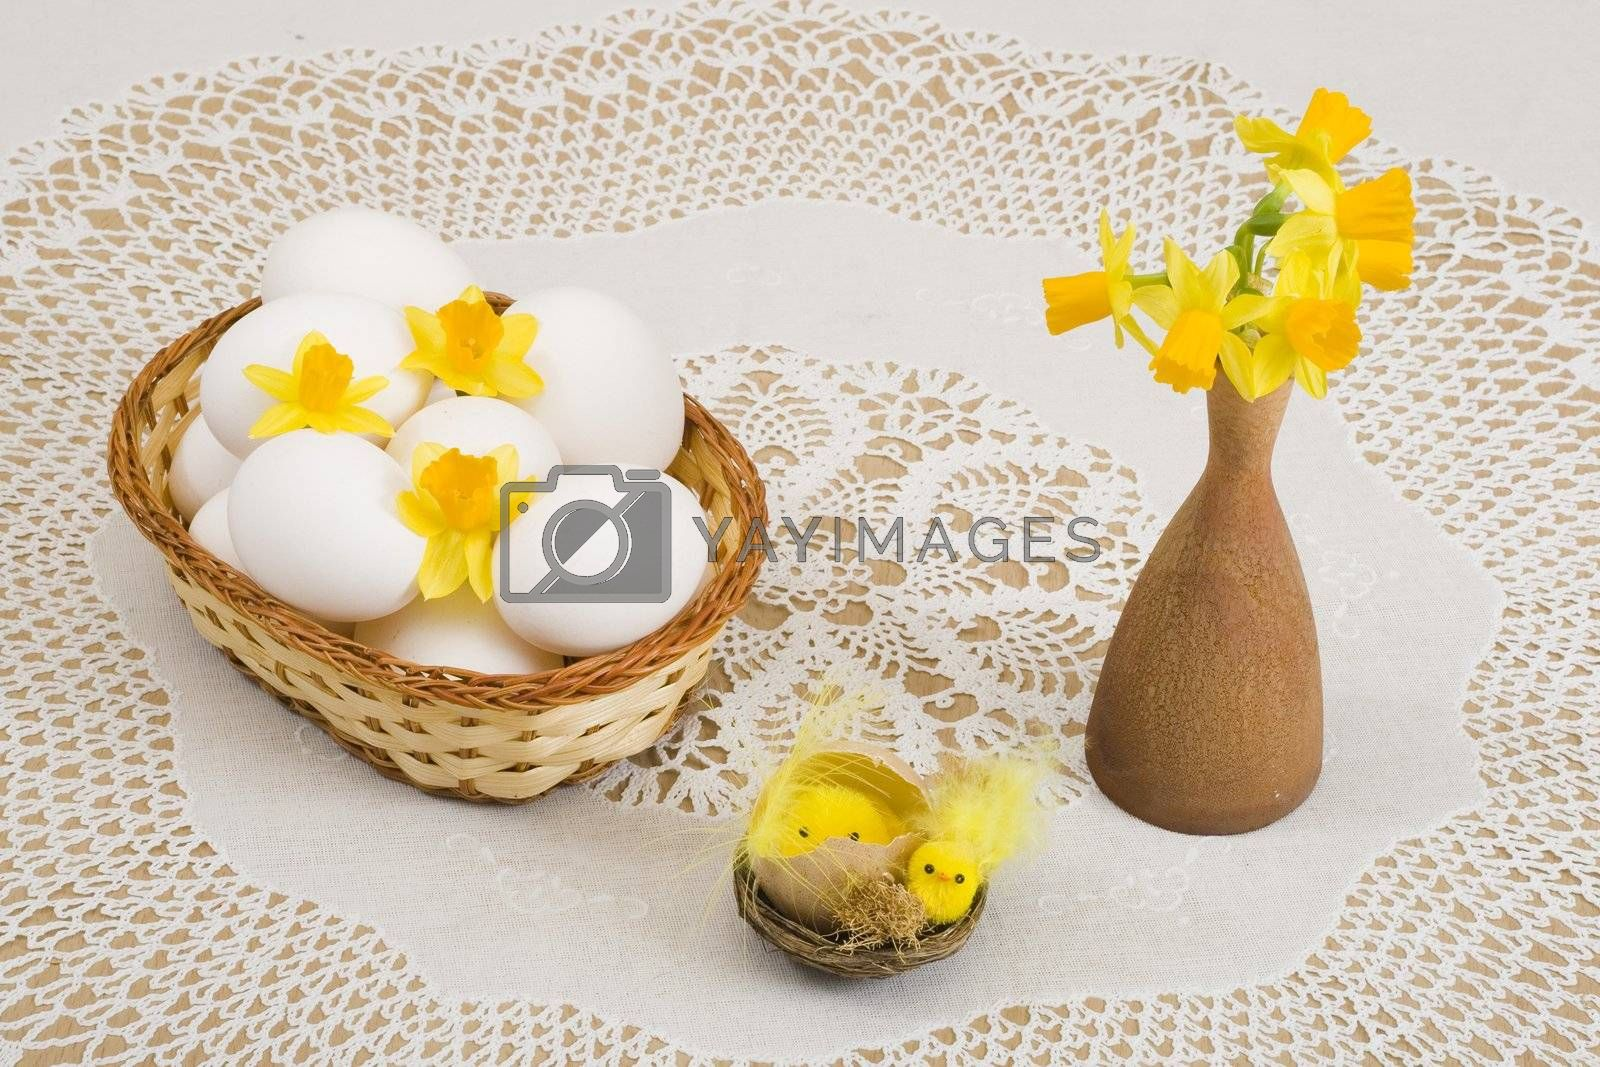 a basket of eggs, easter chicken and yellow daffodils